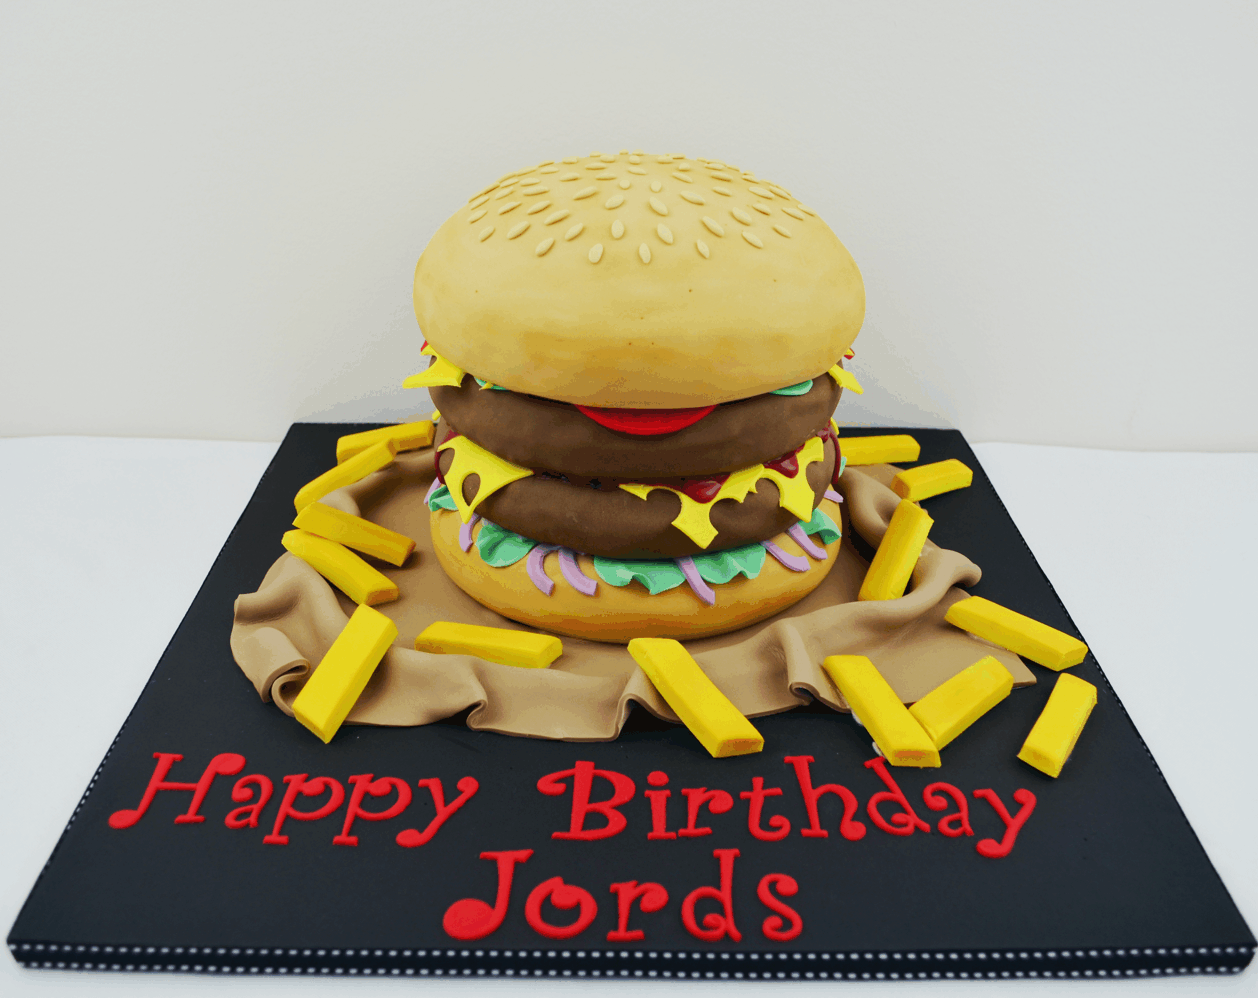 Fantastic Burger Cake Hamburger Cake Birthday Cake Funny Birthday Cards Online Inifofree Goldxyz